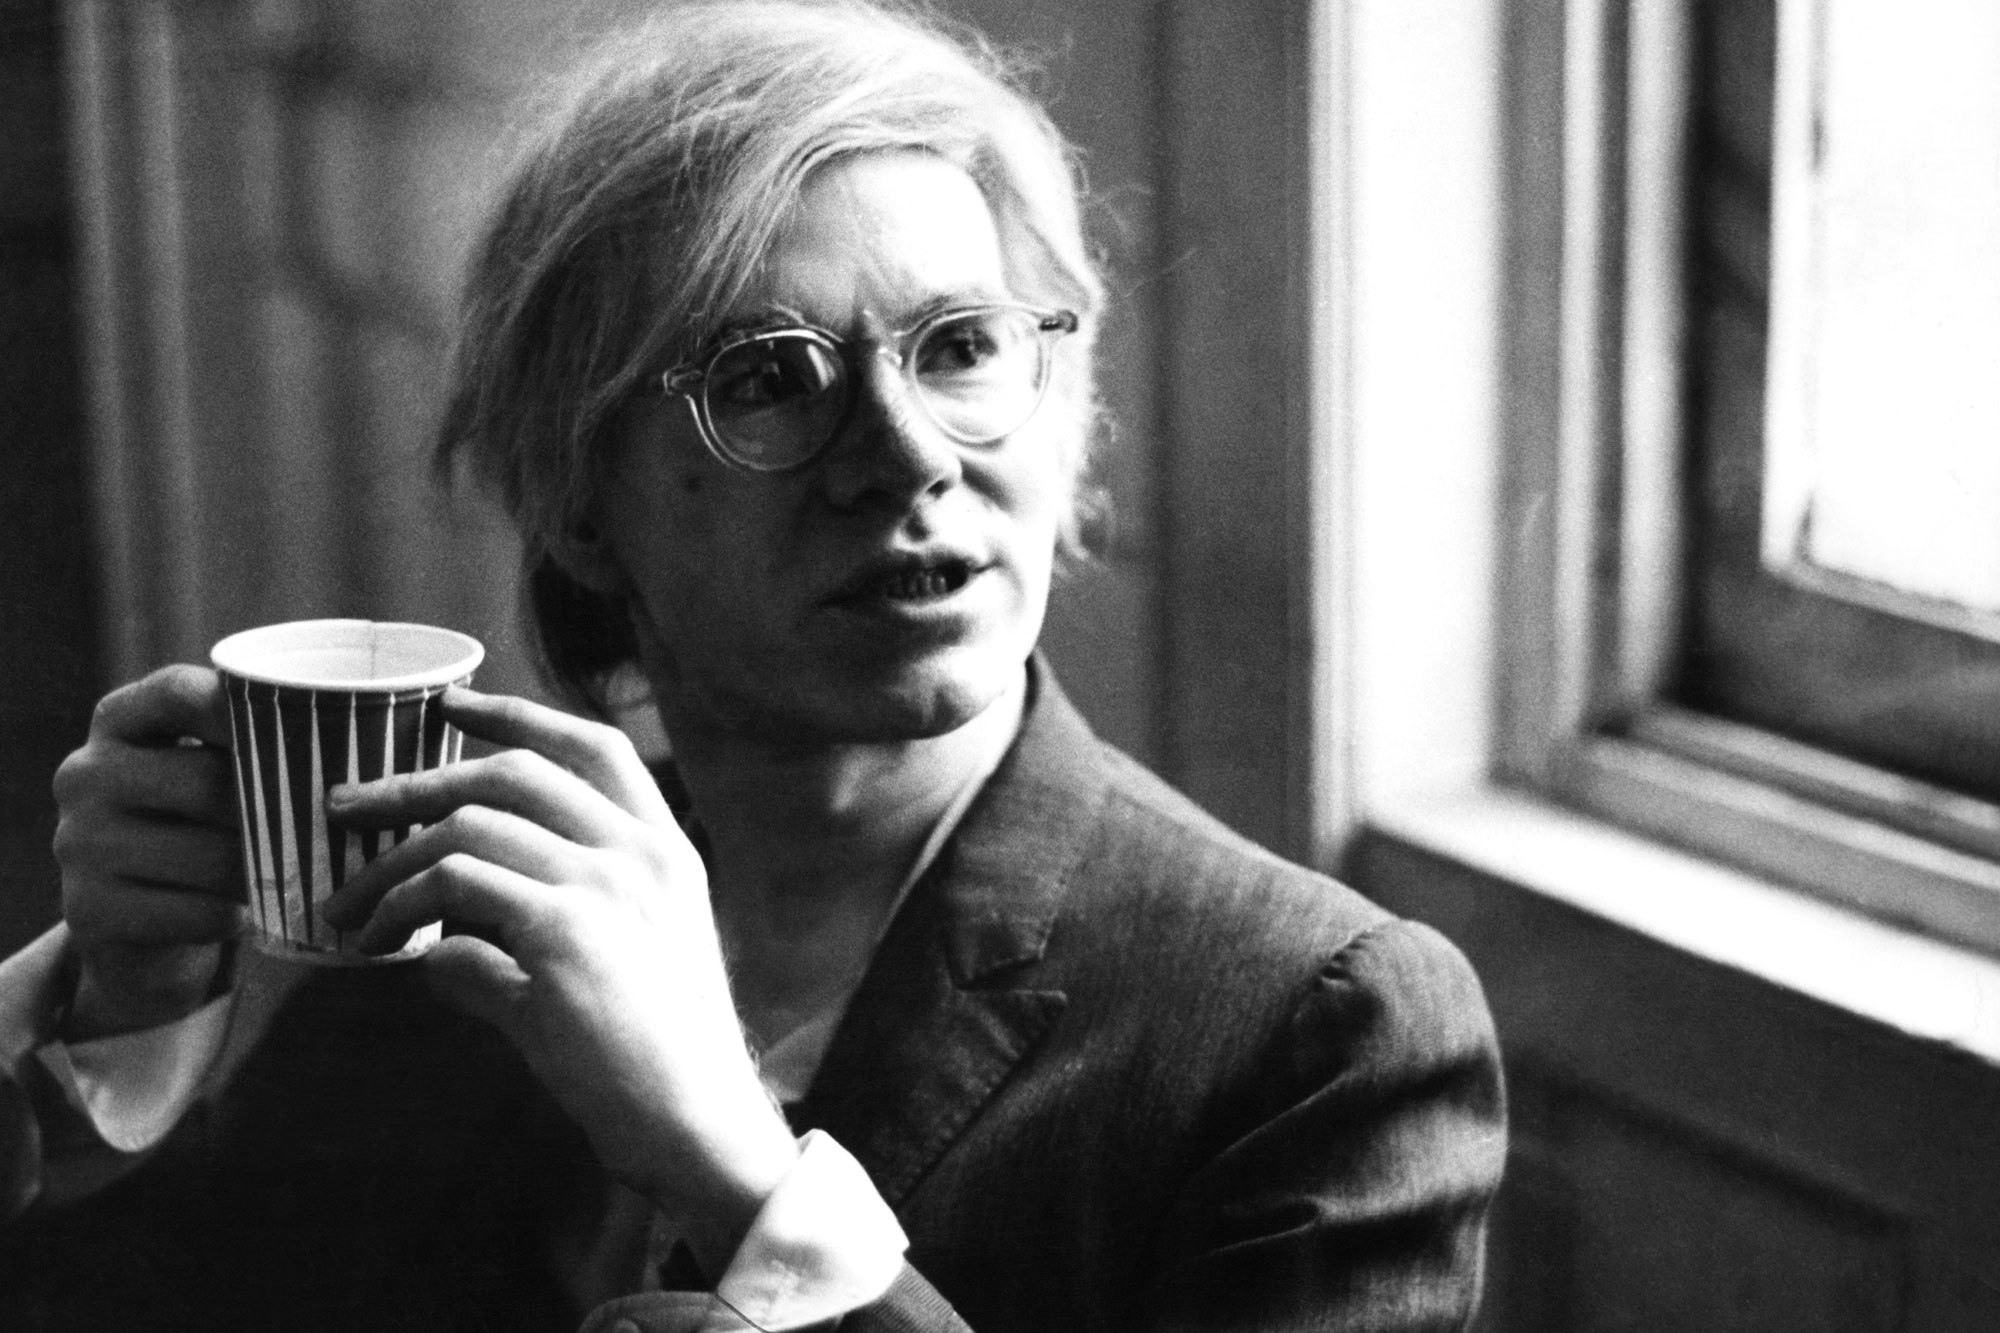 Warhole, The Father Of Pop, Pop, Andy, Andy Warhol